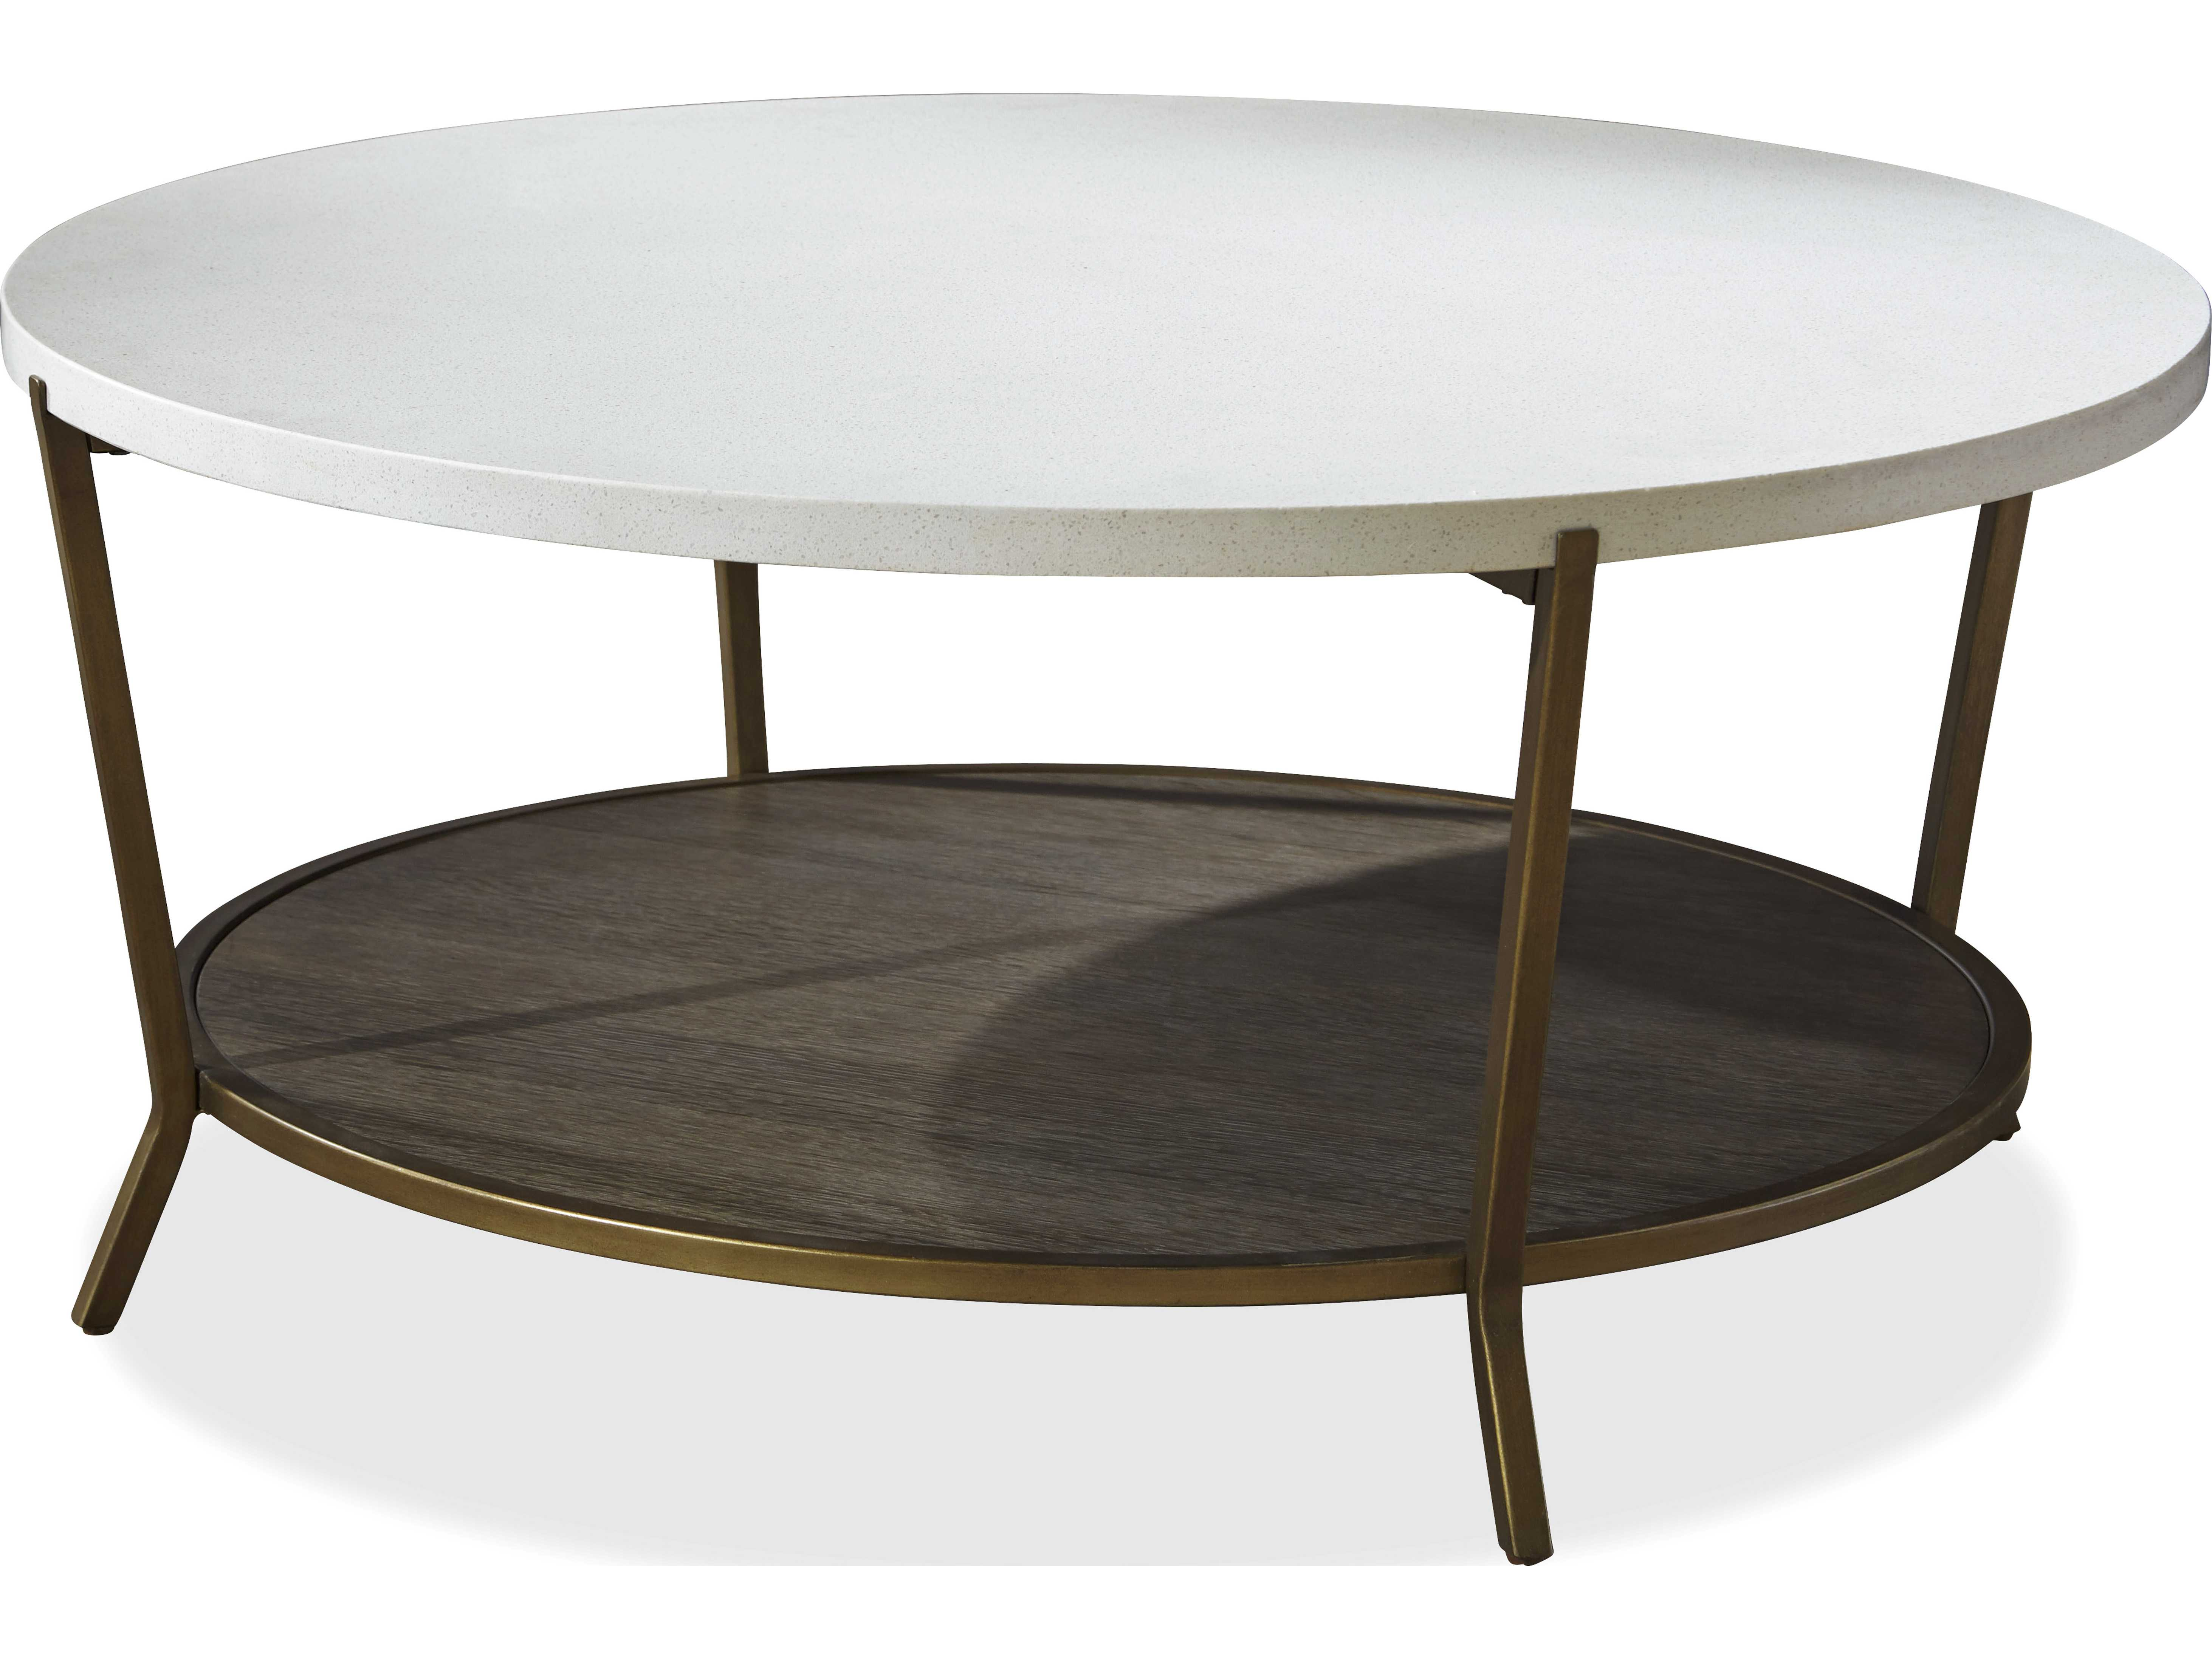 Universal furniture playlist 42 round brown eyed girl cocktail universal furniture playlist 42 round brown eyed girl cocktail table uf507818 geotapseo Image collections